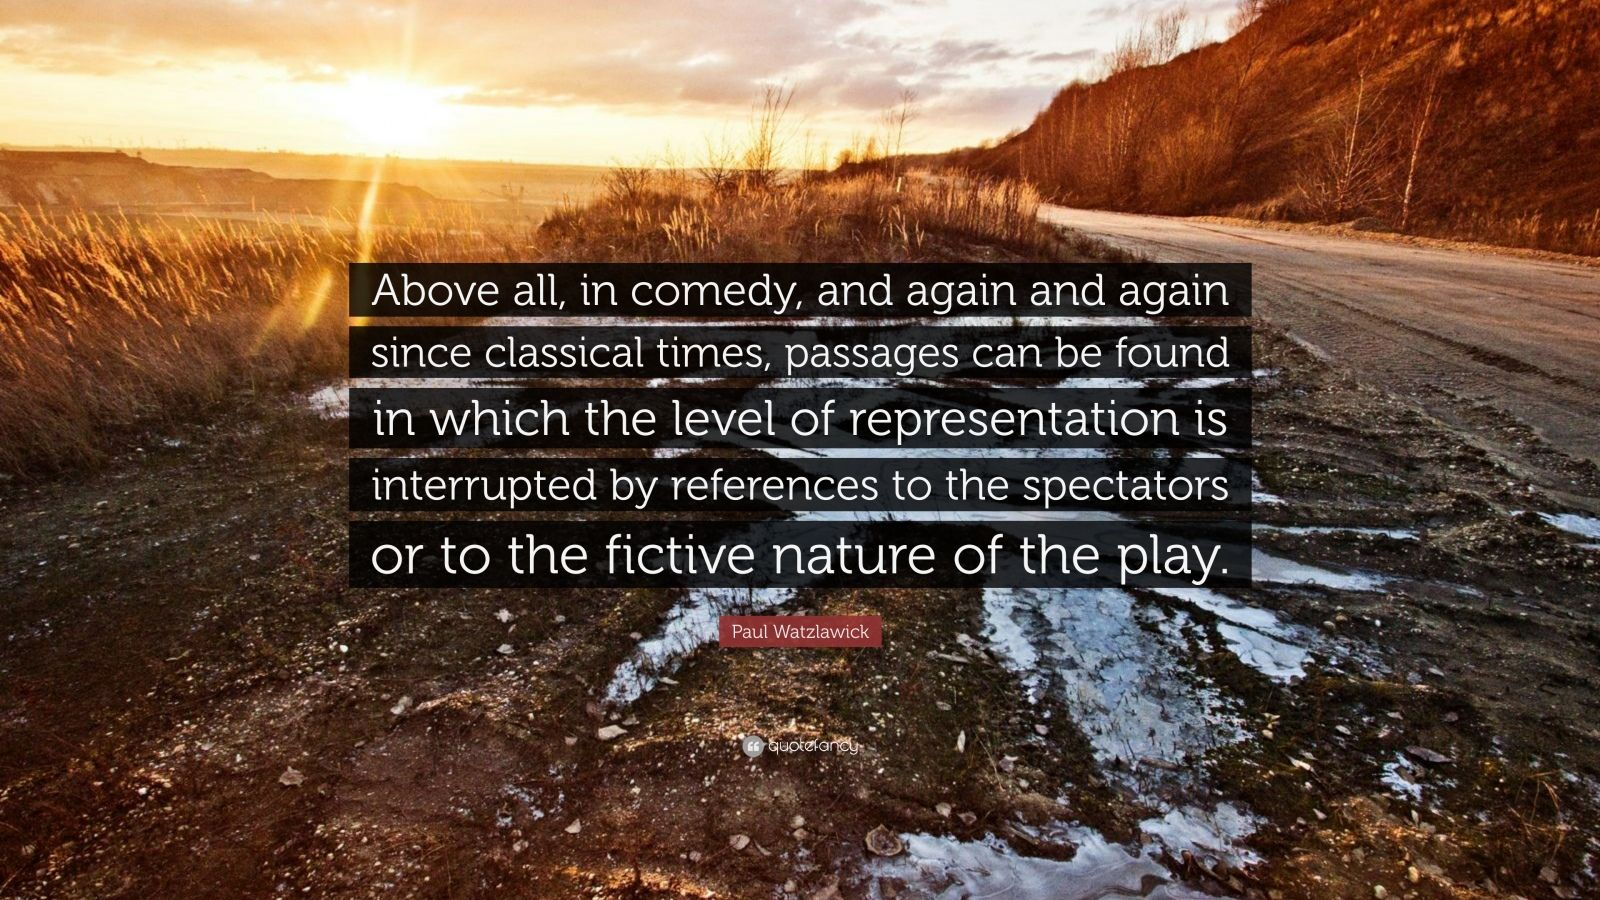 "Paul Watzlawick Quote: ""Above all, in comedy, and again and again since classical times, passages can be found in which the level of representation is interrupted by references to the spectators or to the fictive nature of the play."""